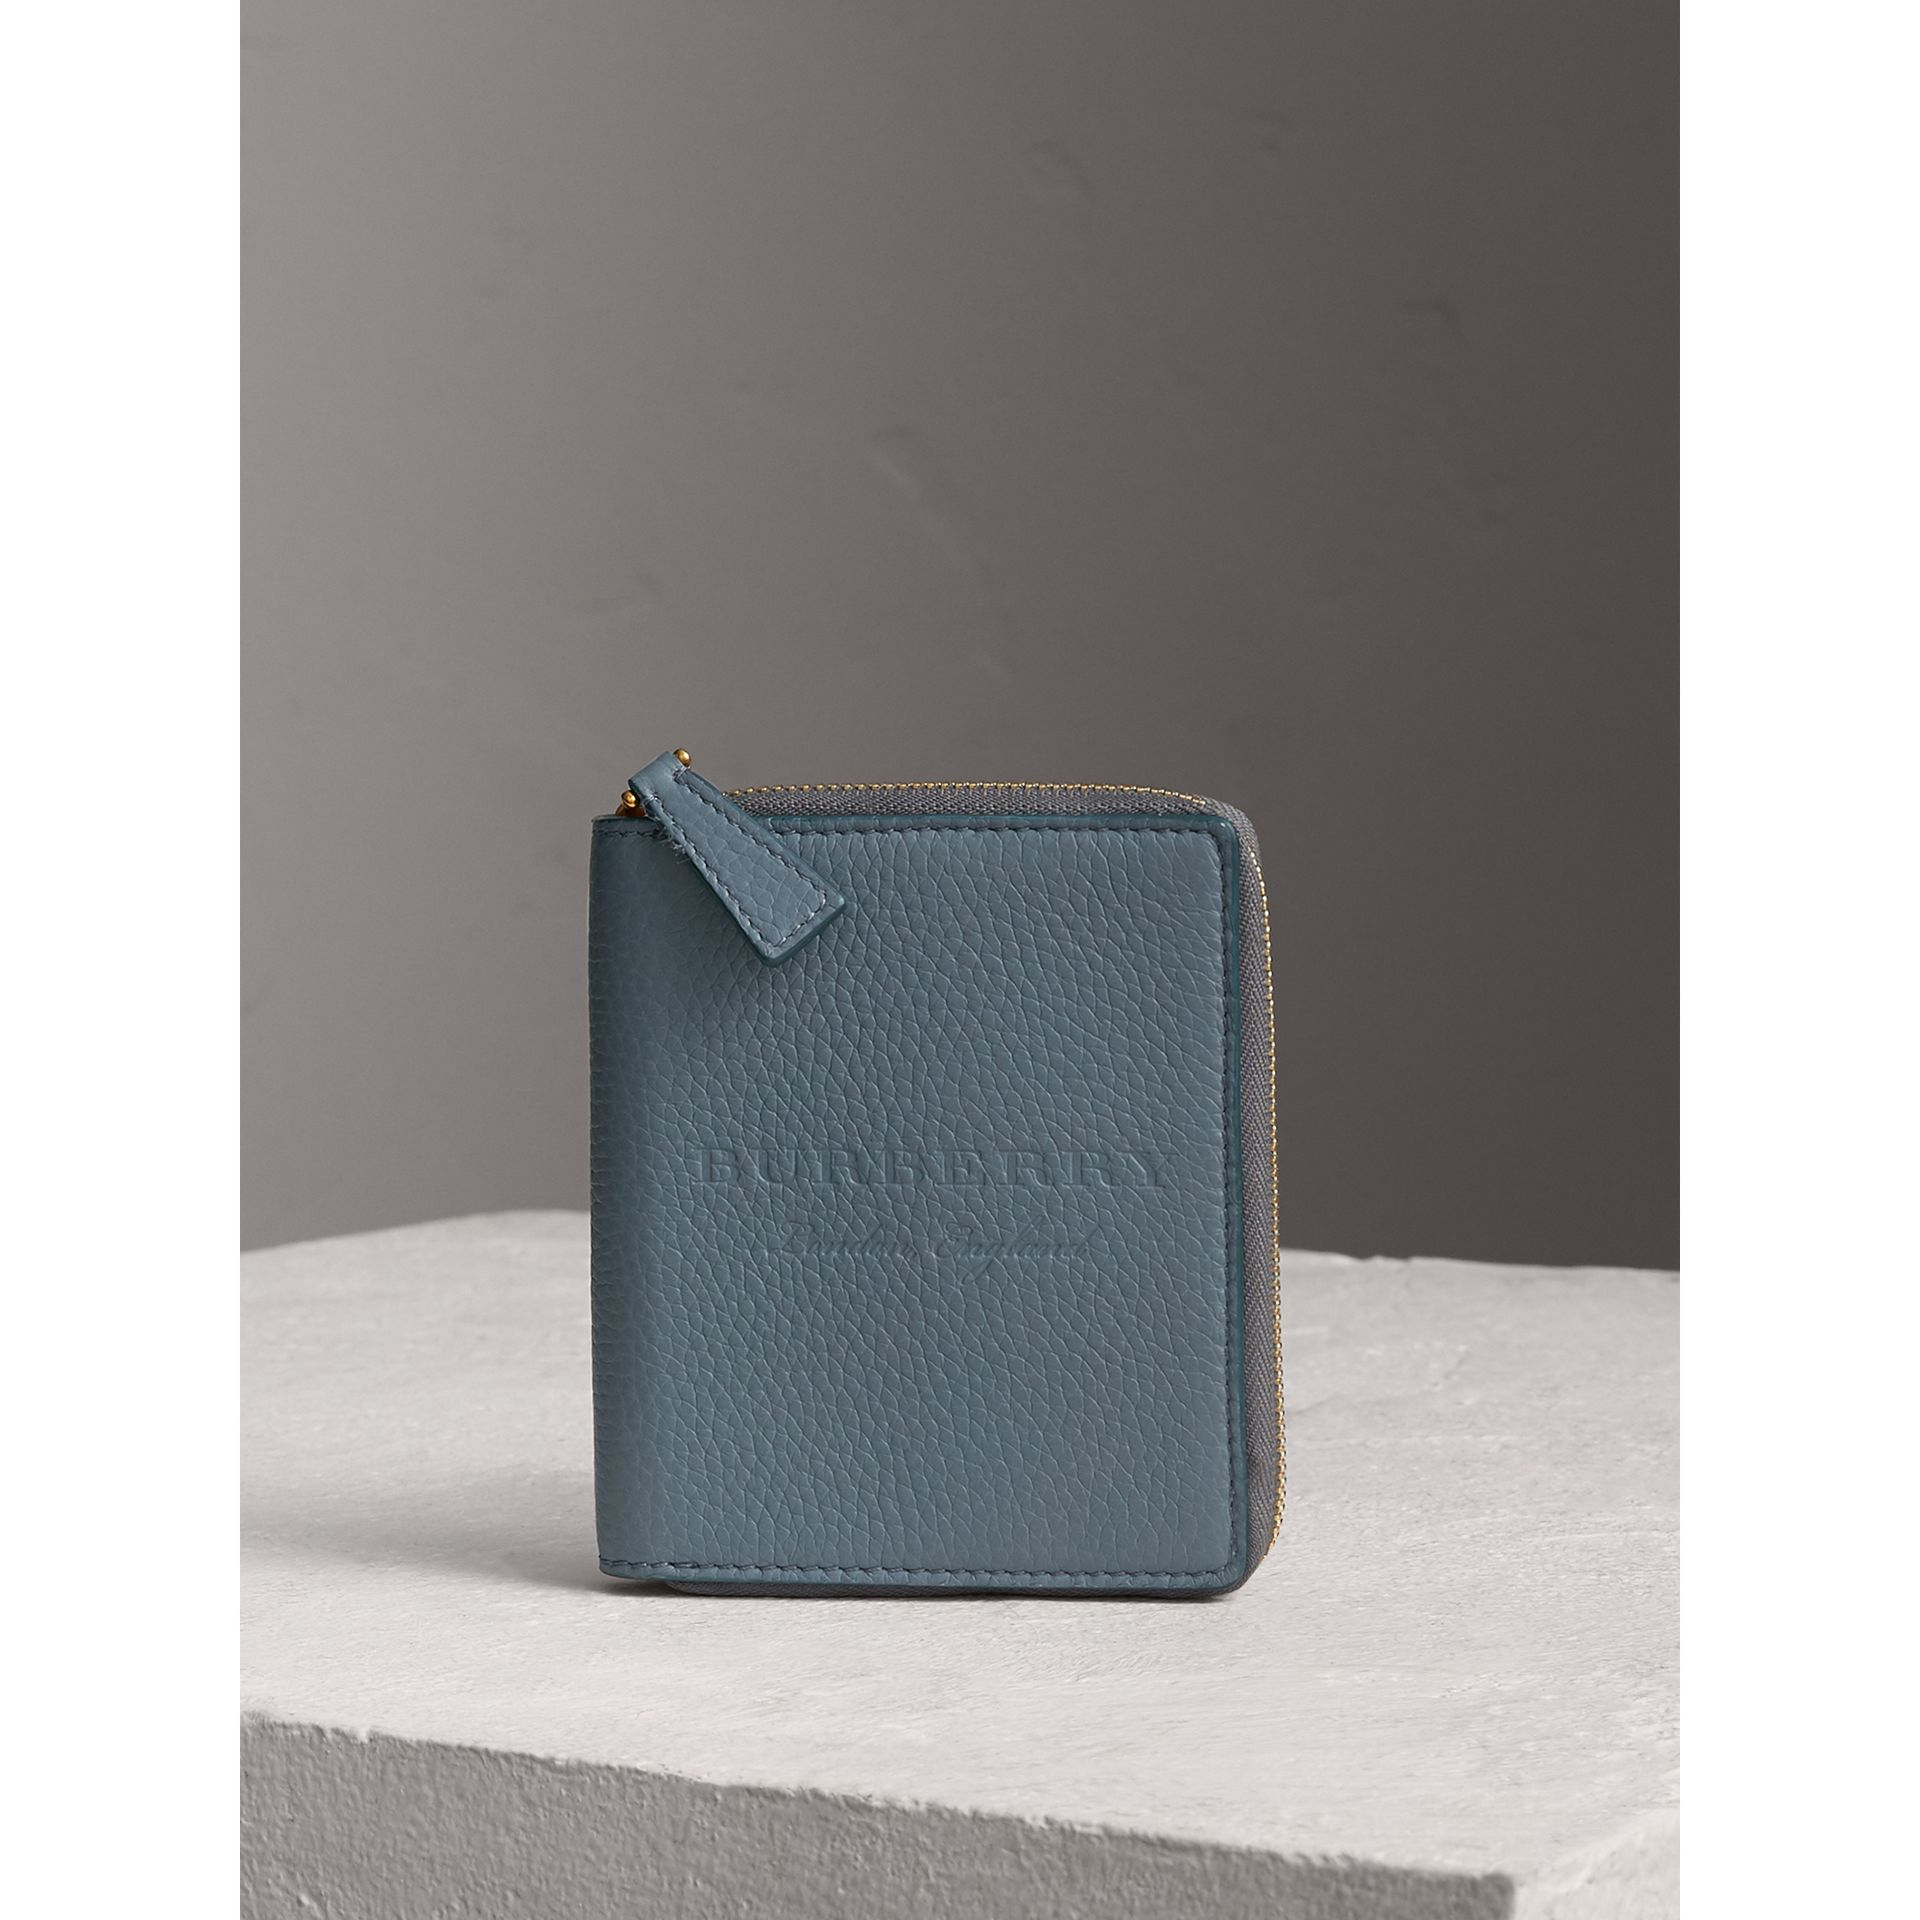 Embossed Grainy Leather Ziparound A6 Notebook Case in Dusty Teal Blue | Burberry - gallery image 4